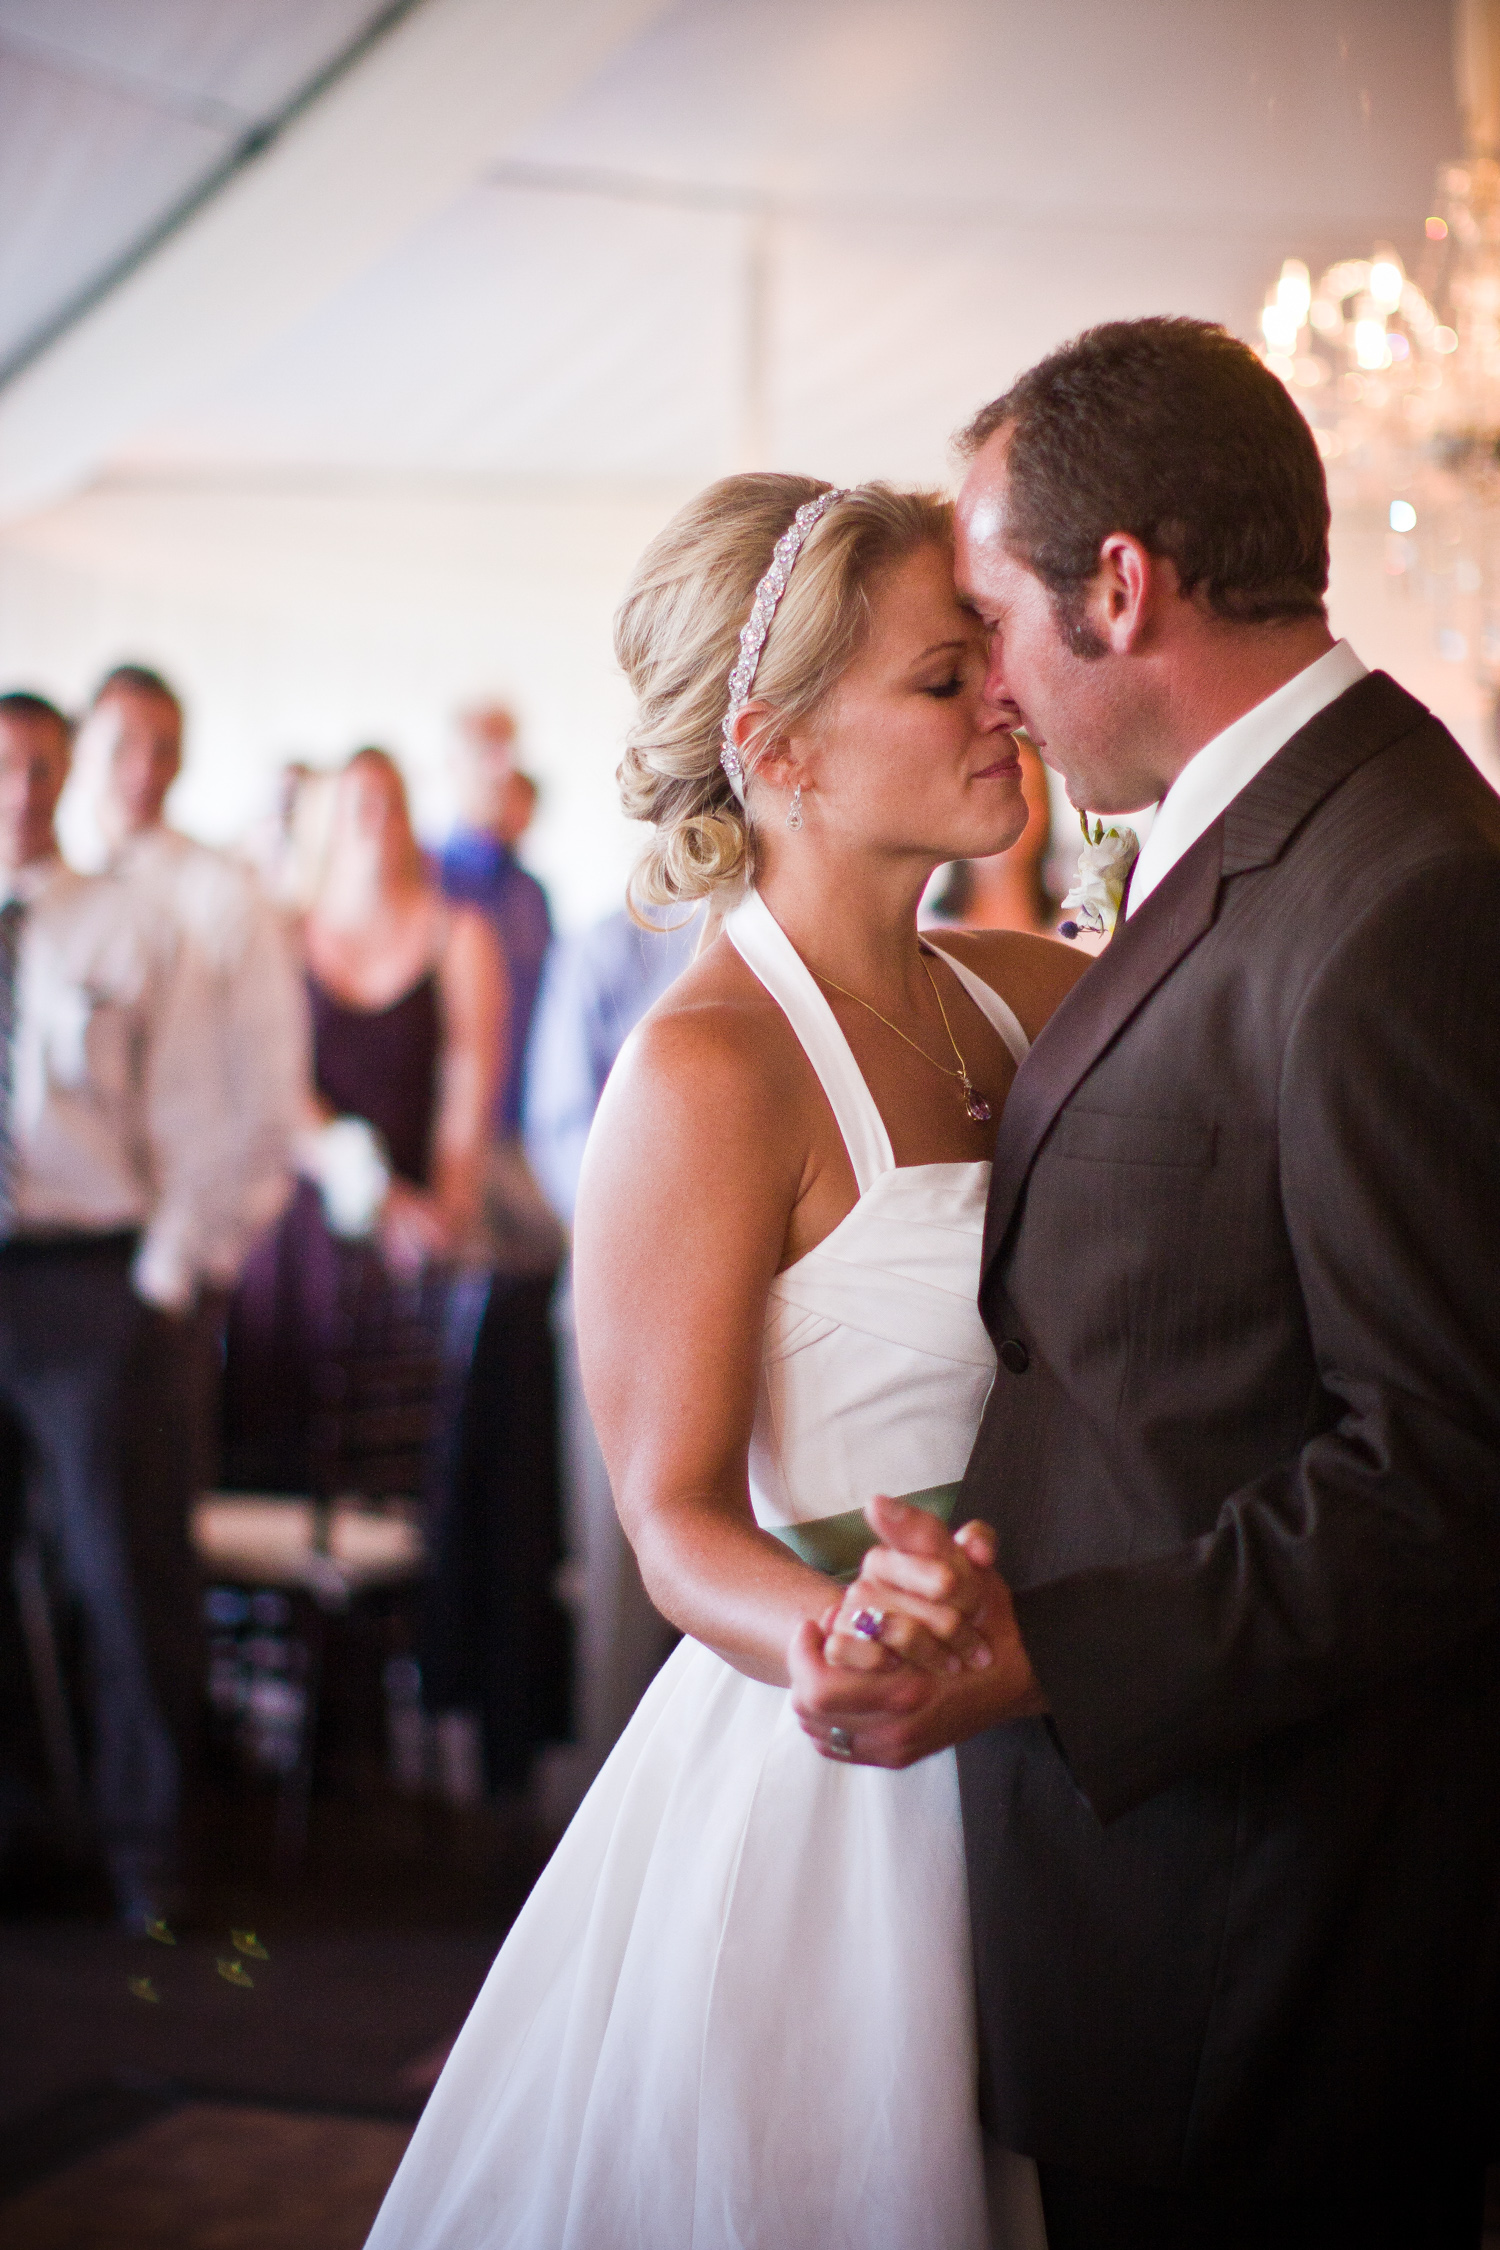 Steamboat_Springs_Wedding_086.JPG